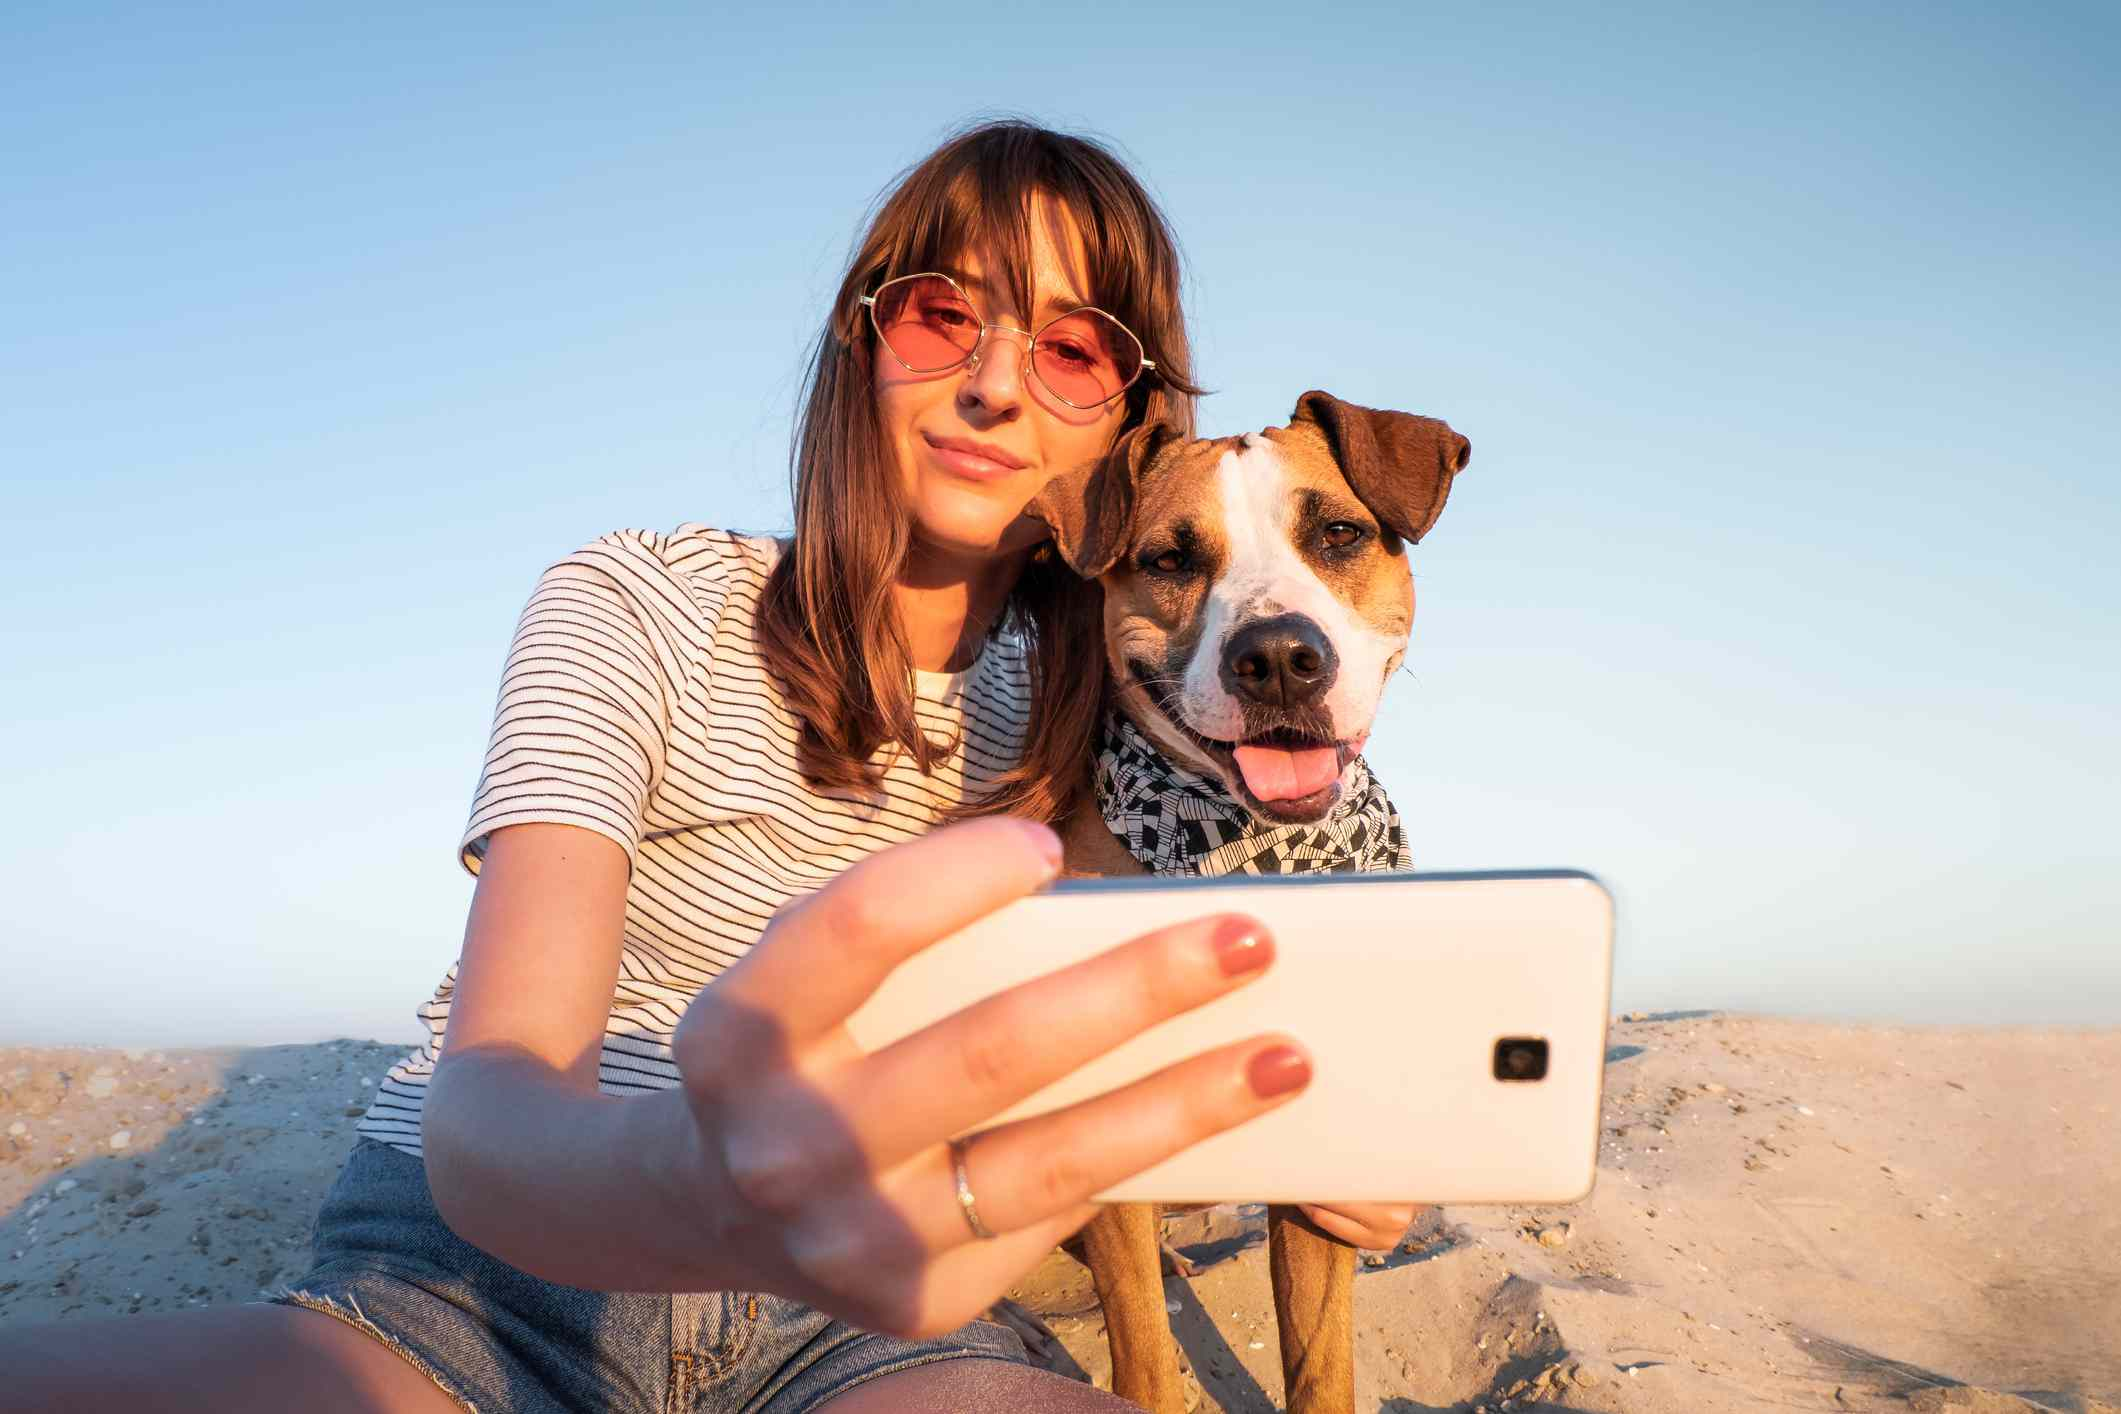 Low Angle View Of Young Woman Taking Selfie With Dog Through Smart Phone At Beach Against Clear Sky